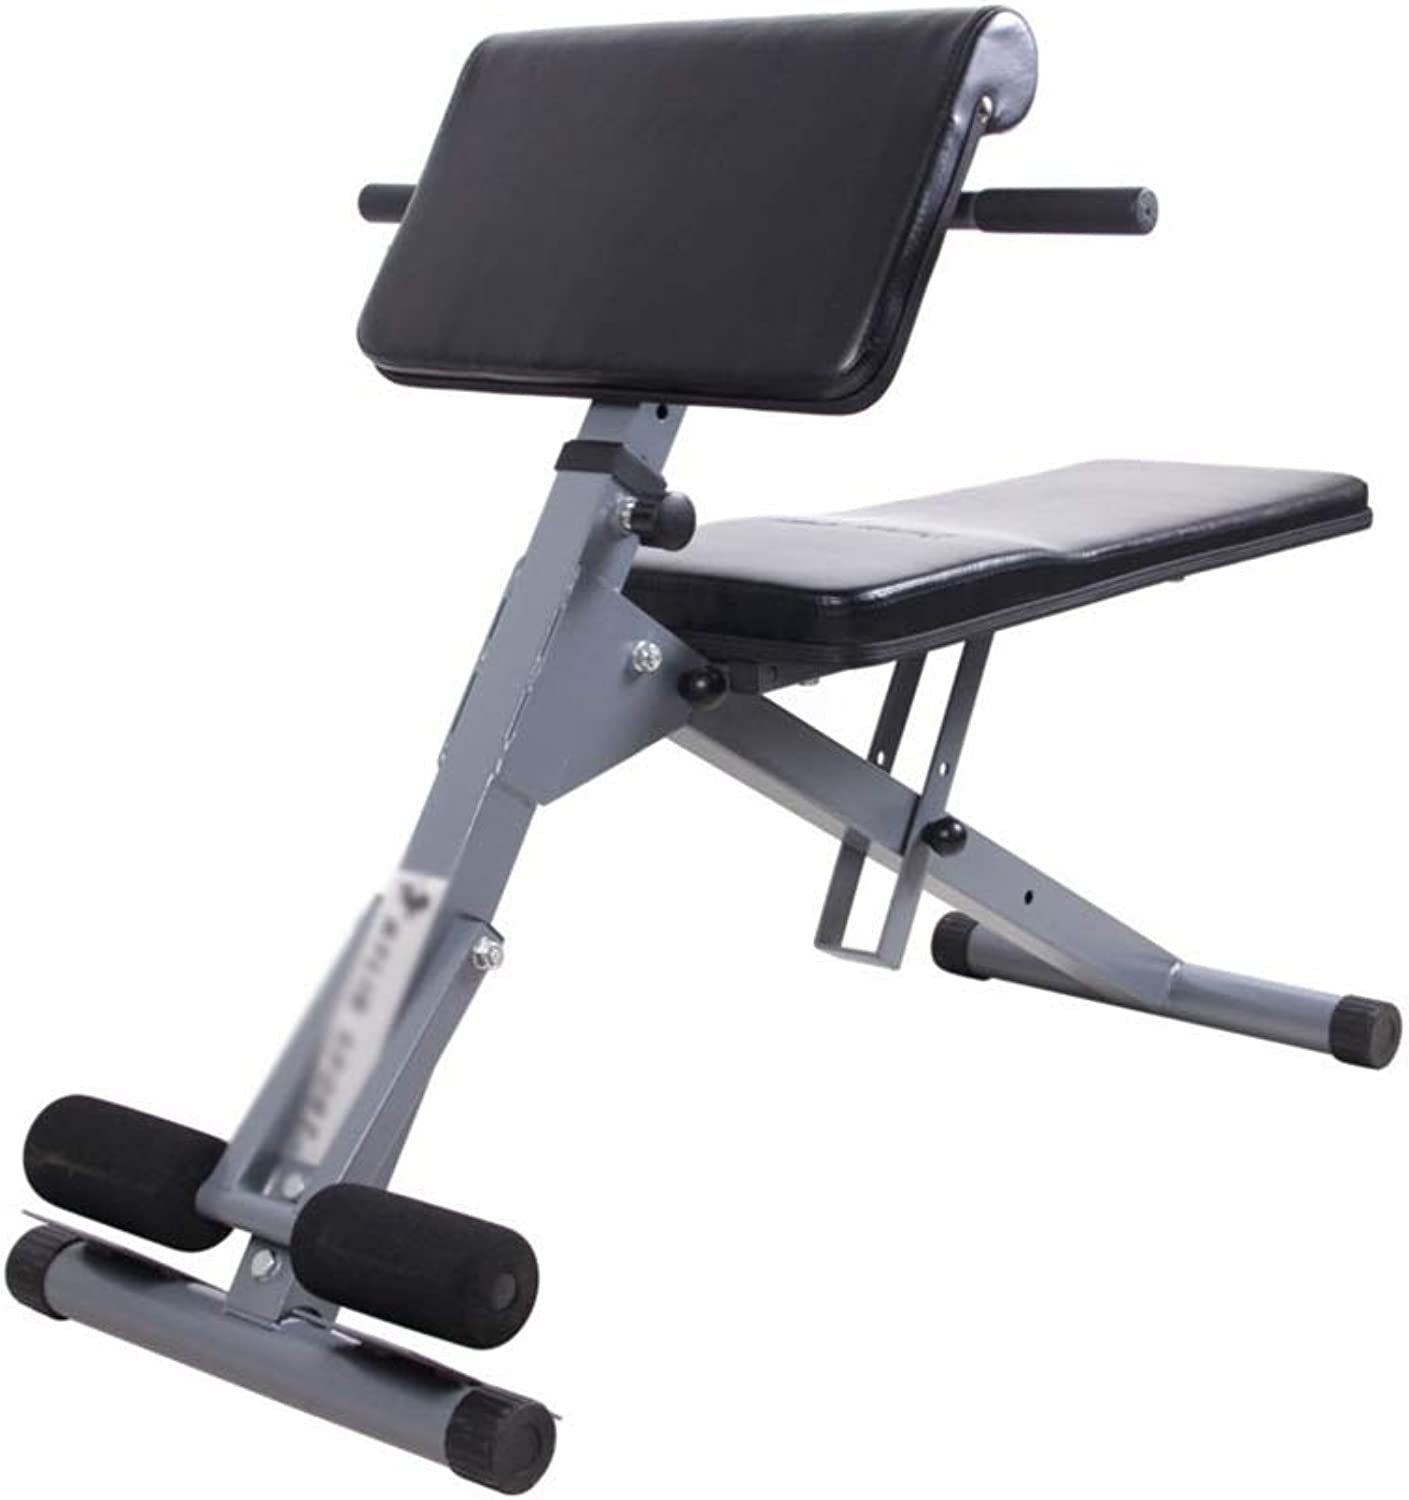 DUXX Dumbbell Bench, Premium Weight Table  Black Supine Board